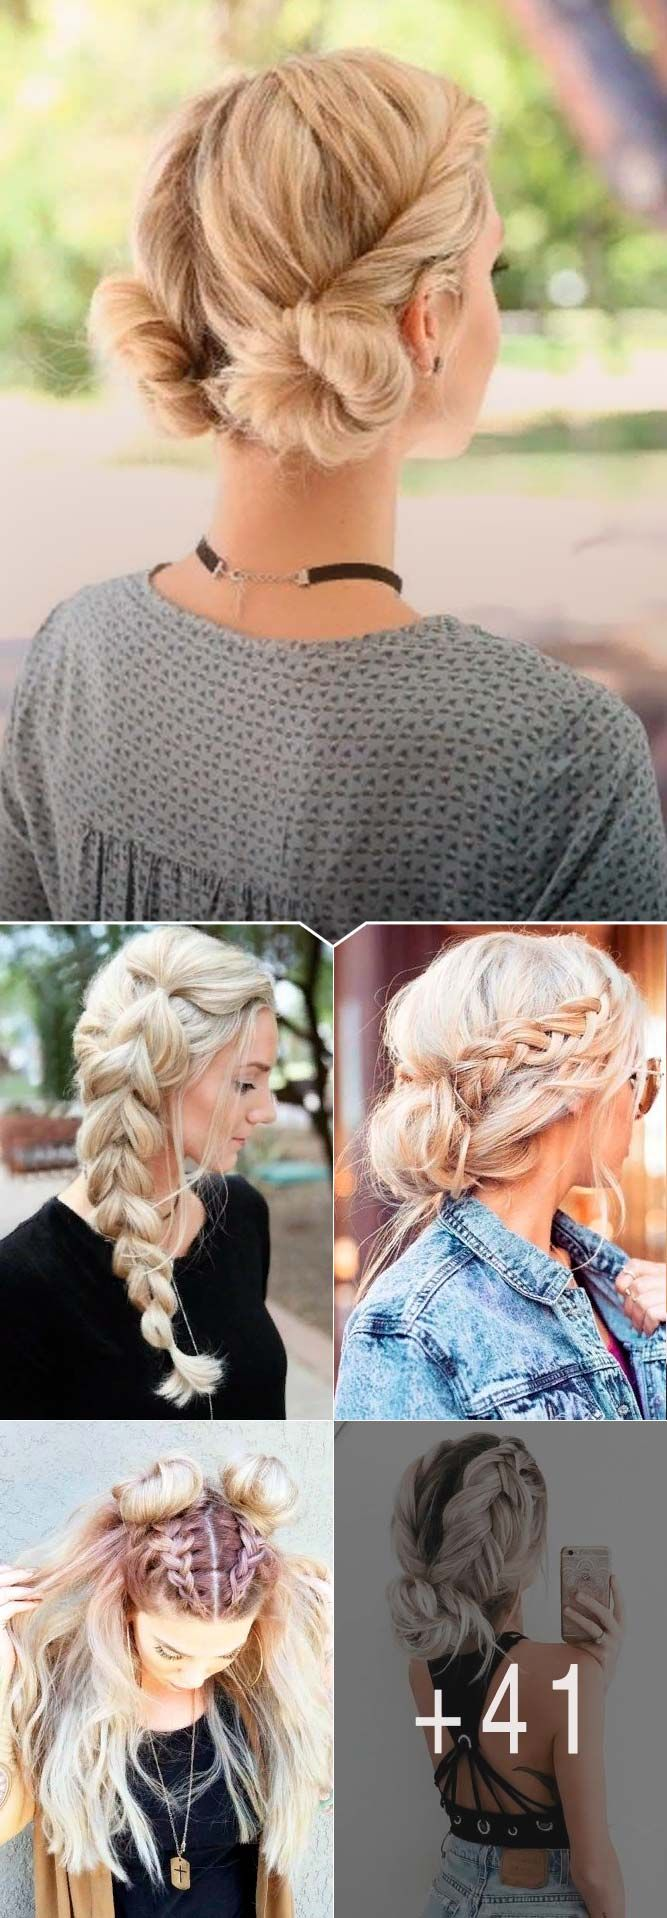 Easy Hairstyles For Spring Break ★ Spring break is approaching, and easy hairstyles that look pretty will come in handy whether you have an active or a passive vacation. See our collection. #glaminati #lifestyle #easyhairstyles